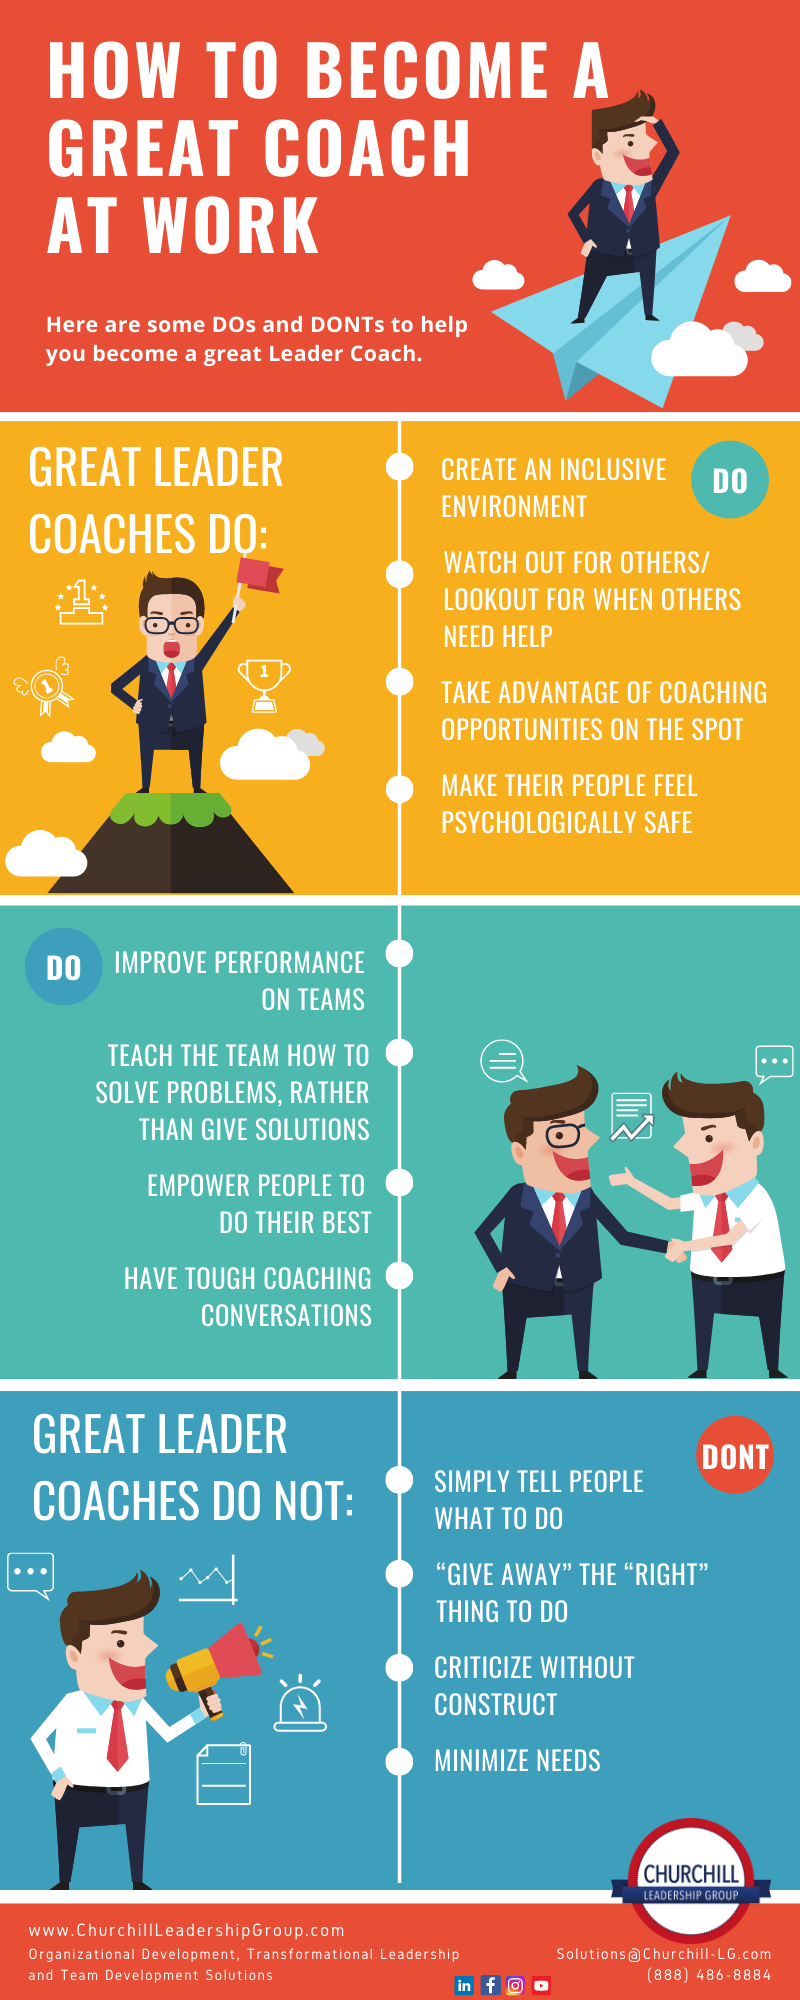 Becoming-a-Great-Coach-at-Work-infographic